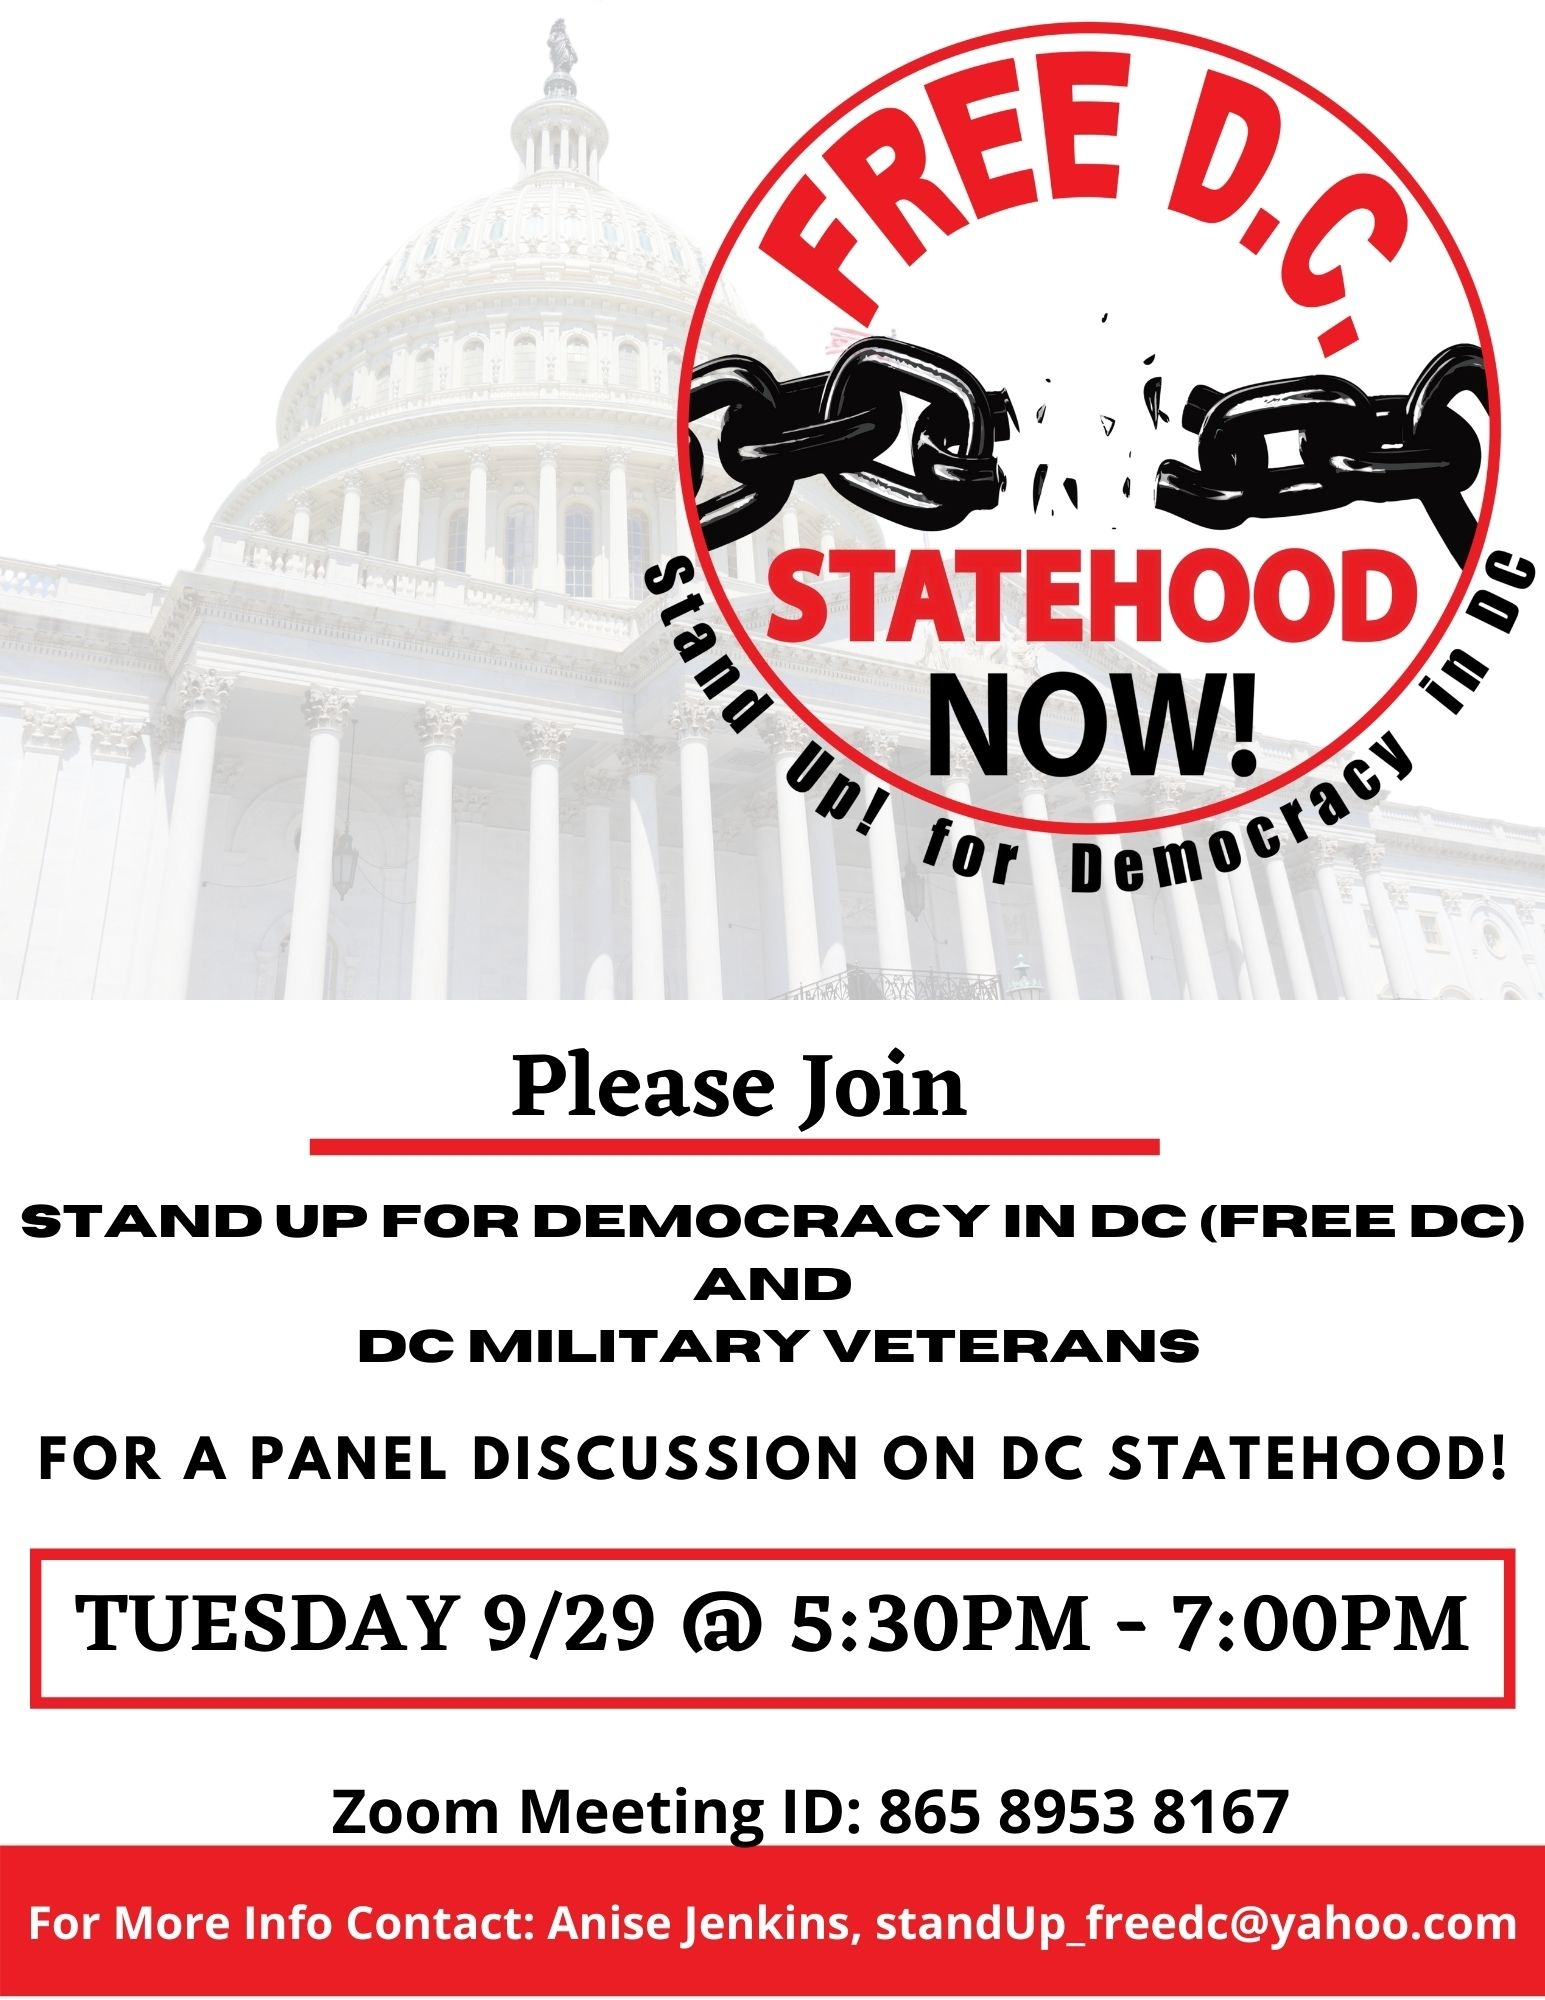 IDC Military Veterans Panel on DC Statehood